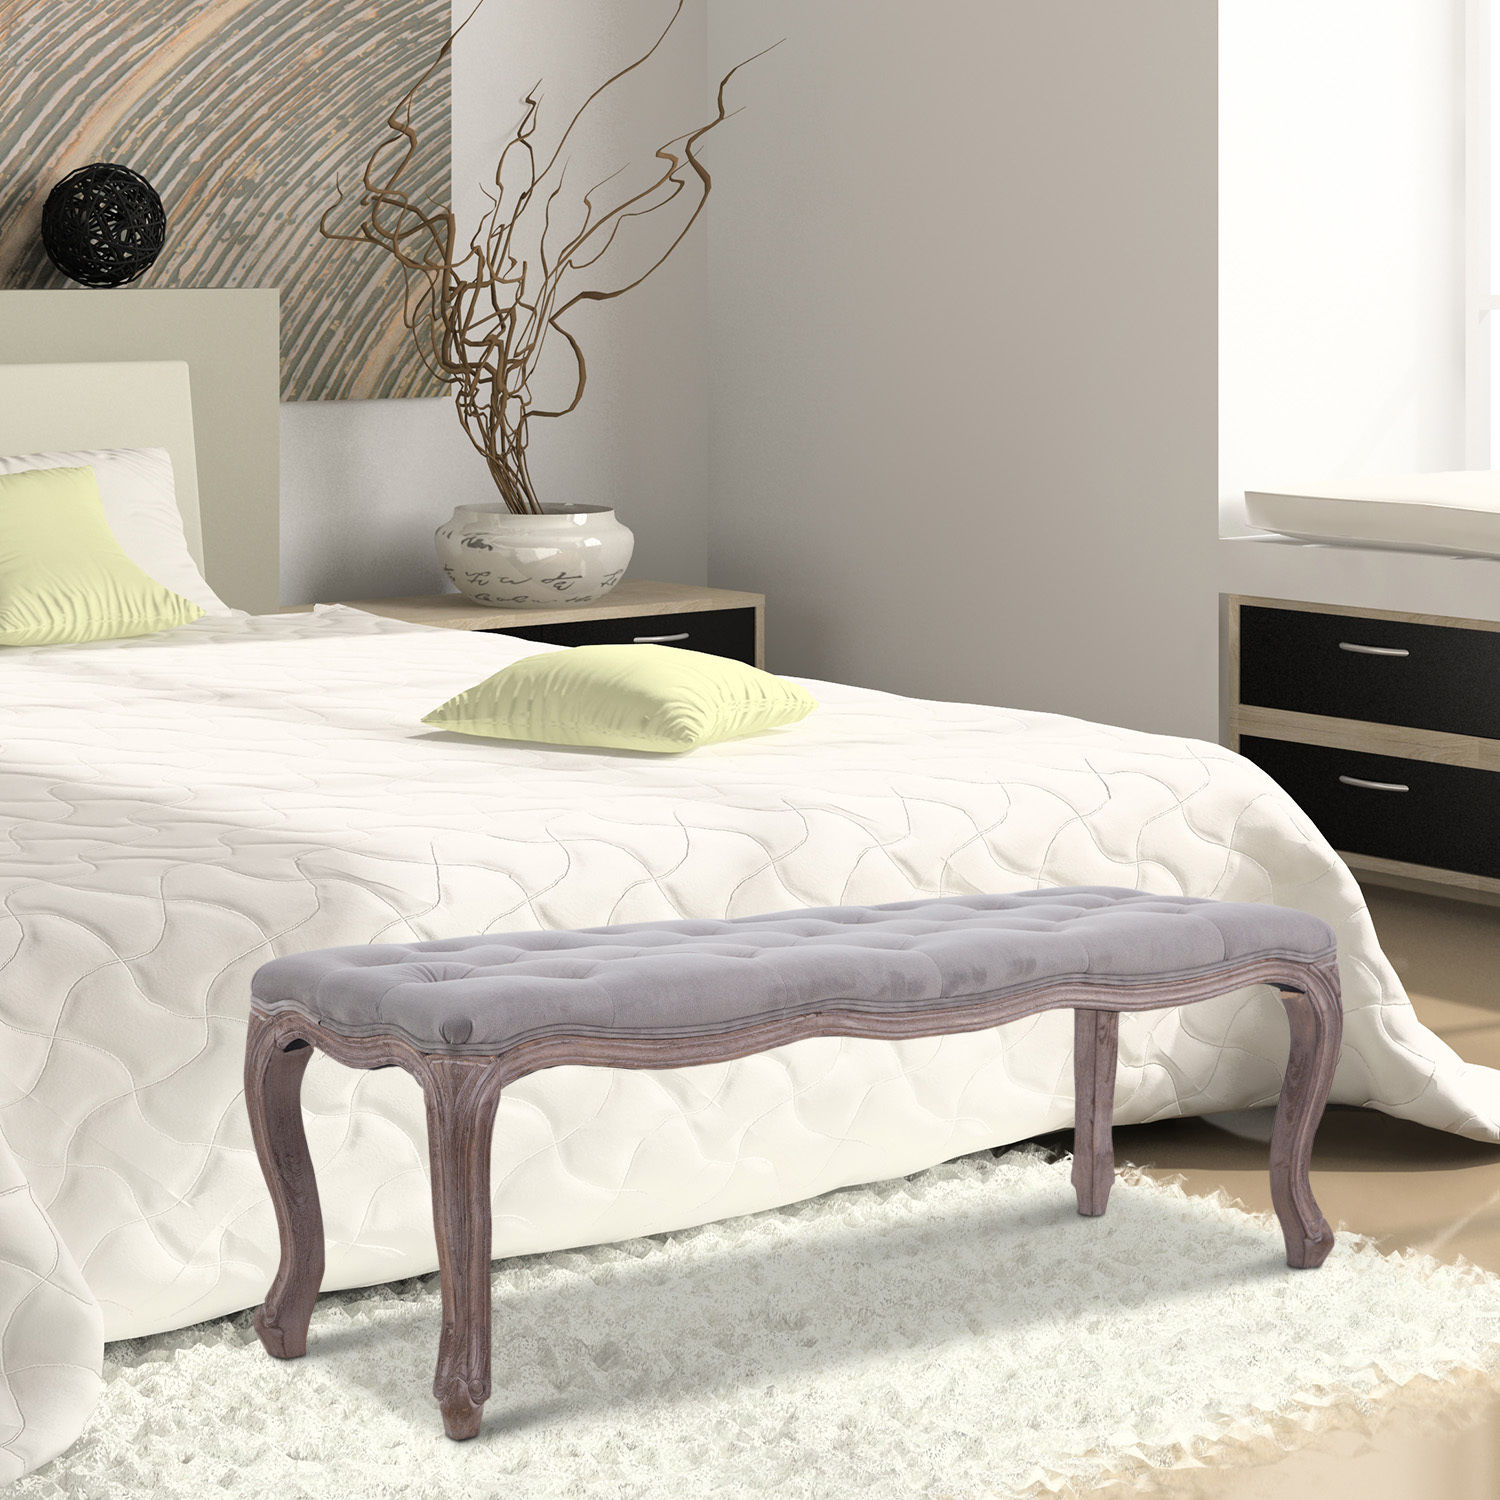 chairs for the end of your bed chair gym accessories upholstered bench tufted seat ottoman wood